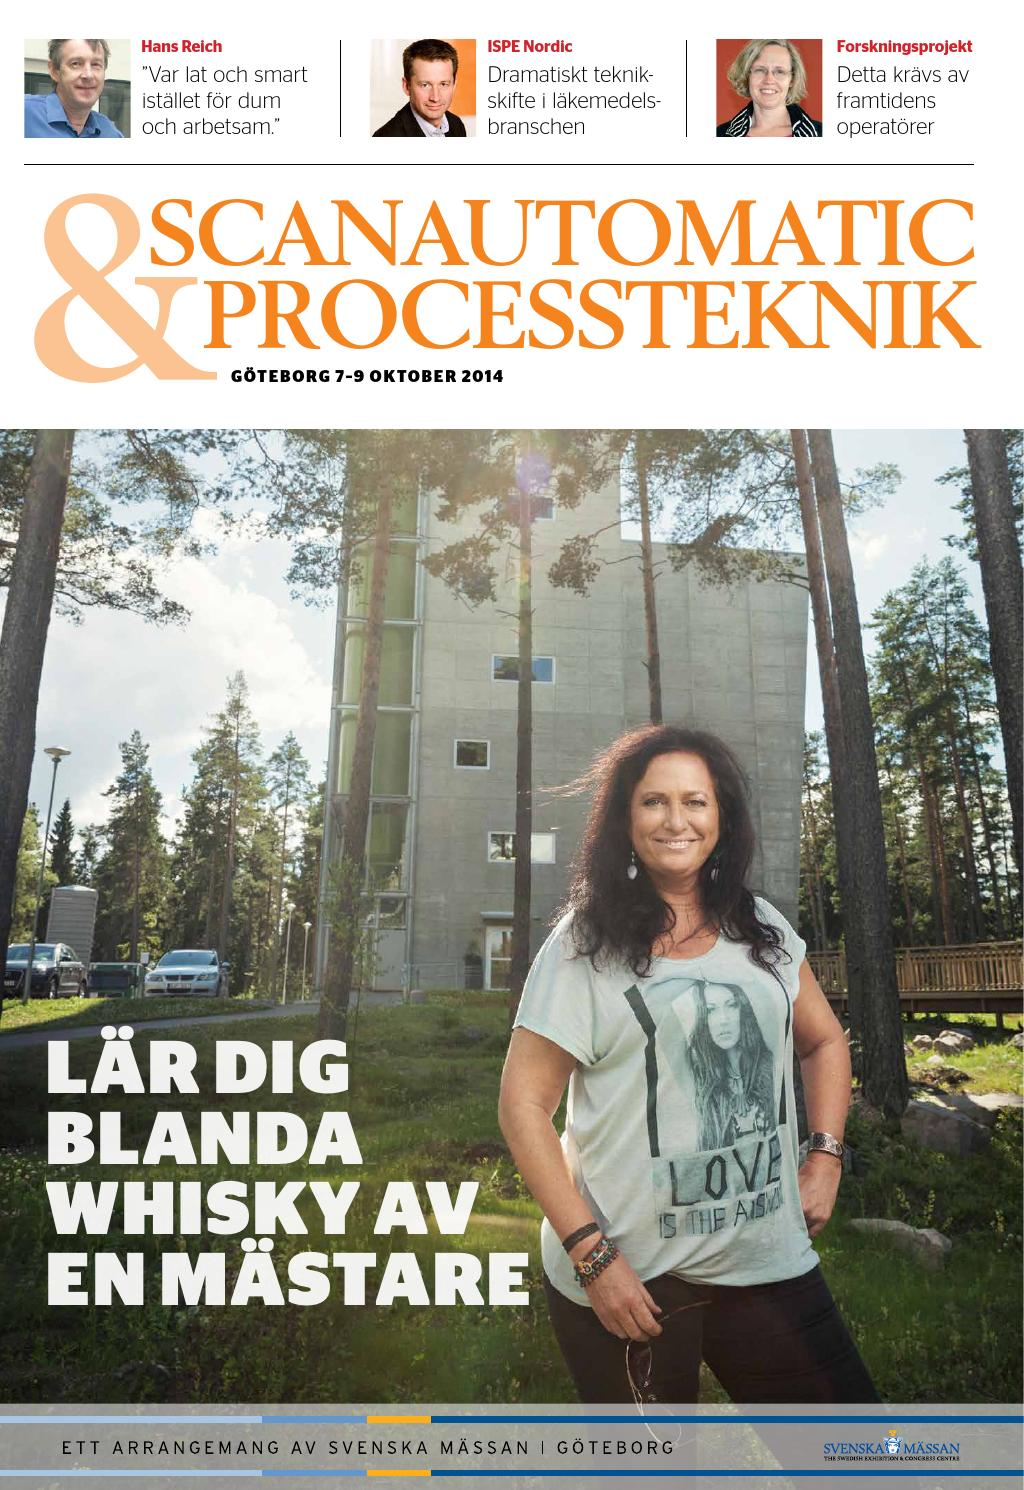 Svensk leverantörstidning nr 5 2016 by hexanova media group ab   issuu